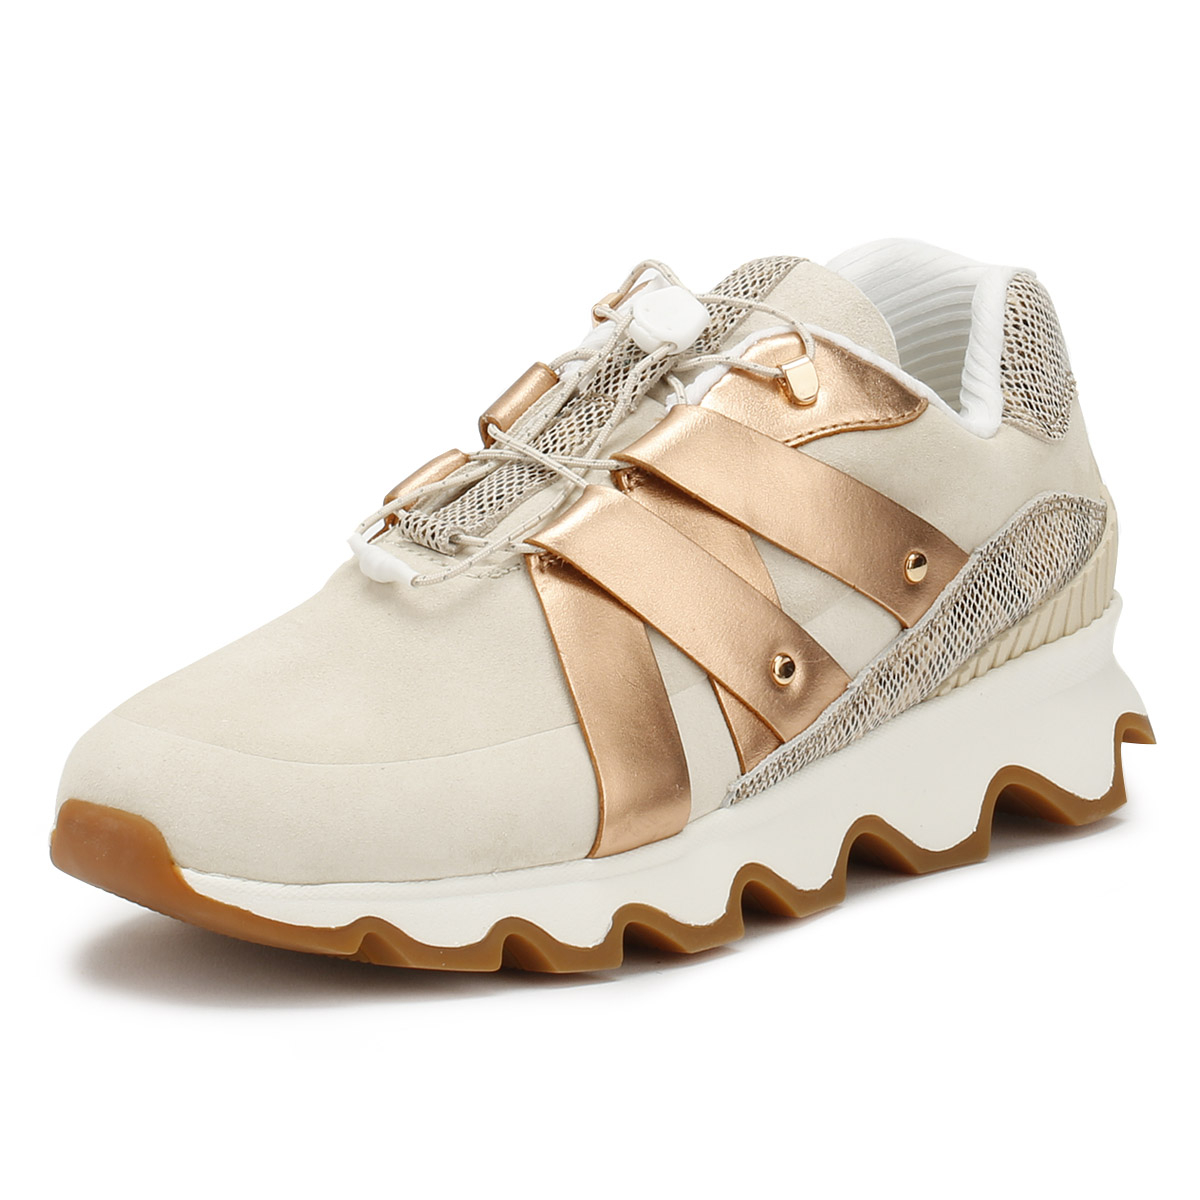 sorel Womens Natural Beige Kinetic Speed Trainers Best Wholesale For Sale Fashionable 2018 Online Prices Cheap Online Cheap Affordable V5SGHX